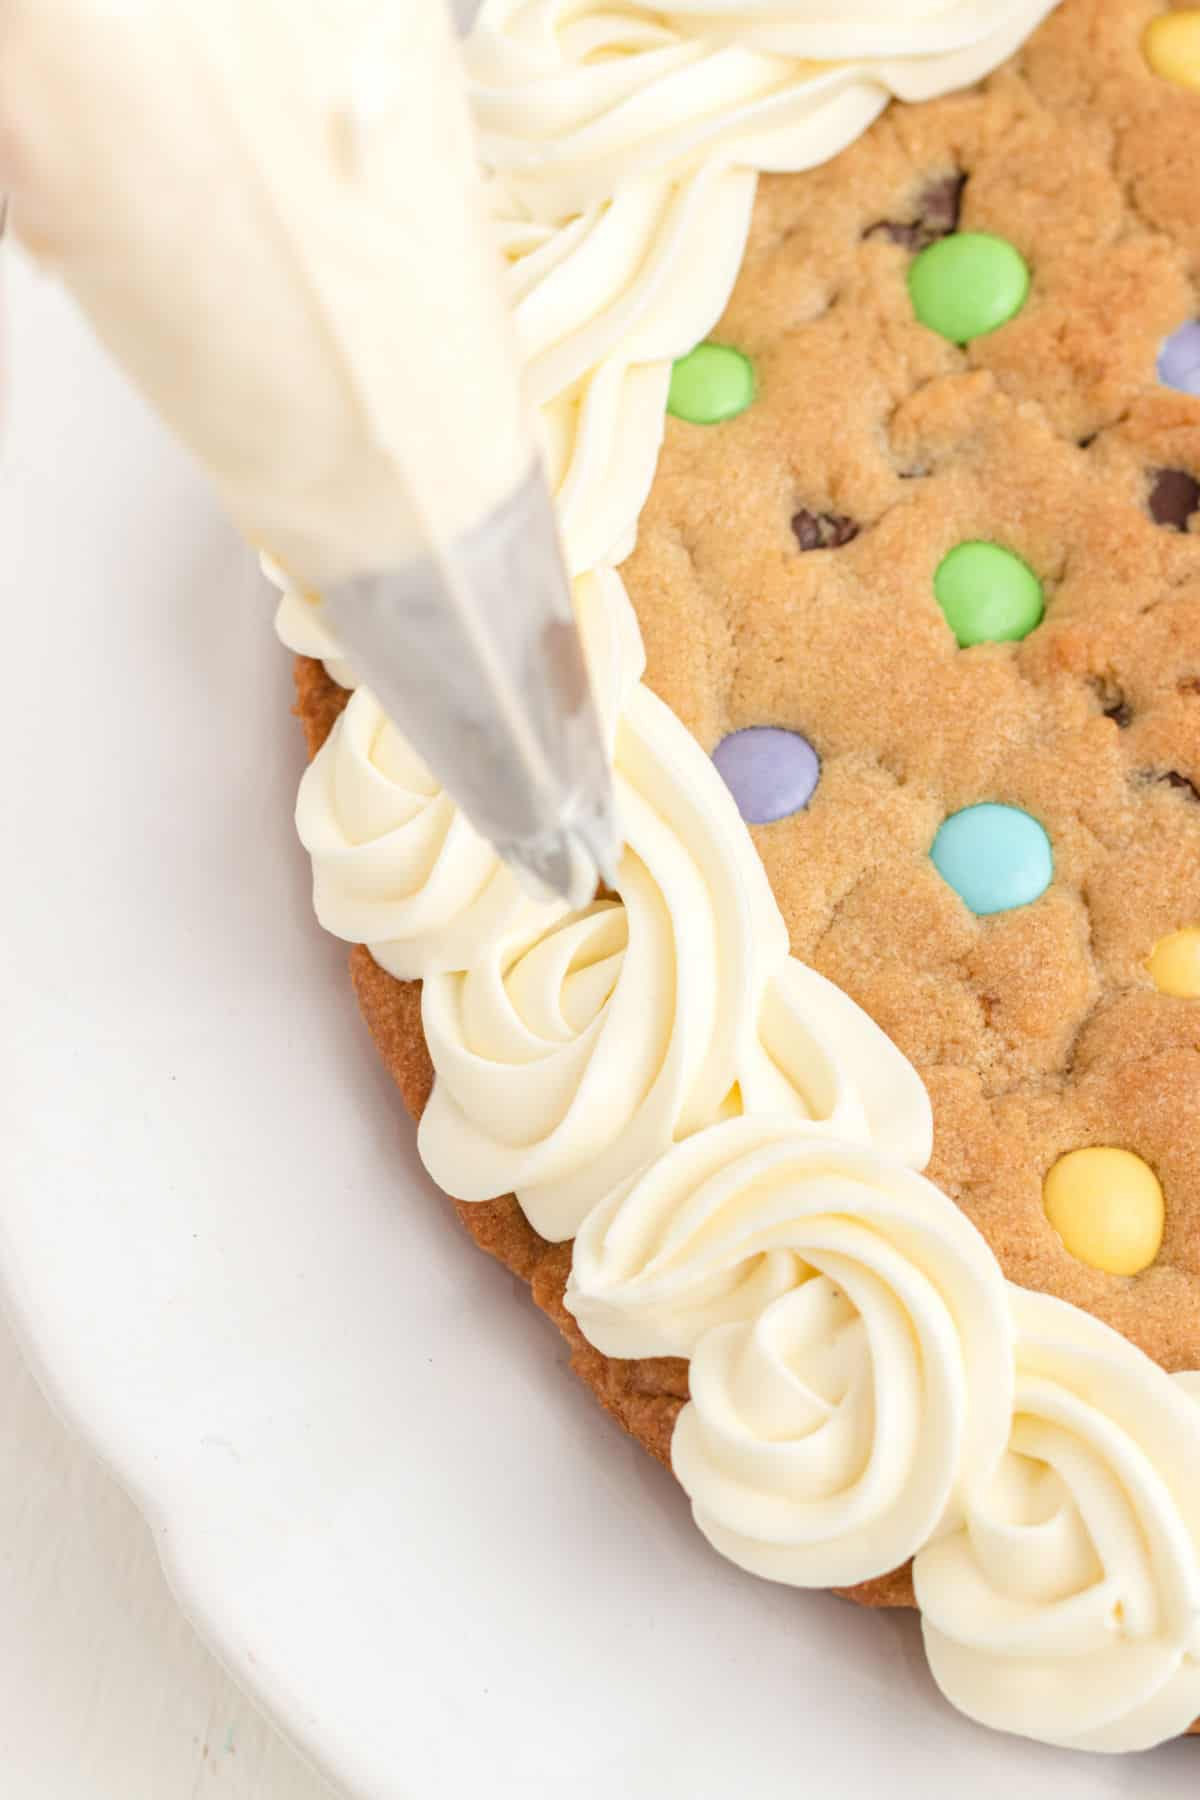 Sugar cookie frosting being piped onto an Easter cookie cake.